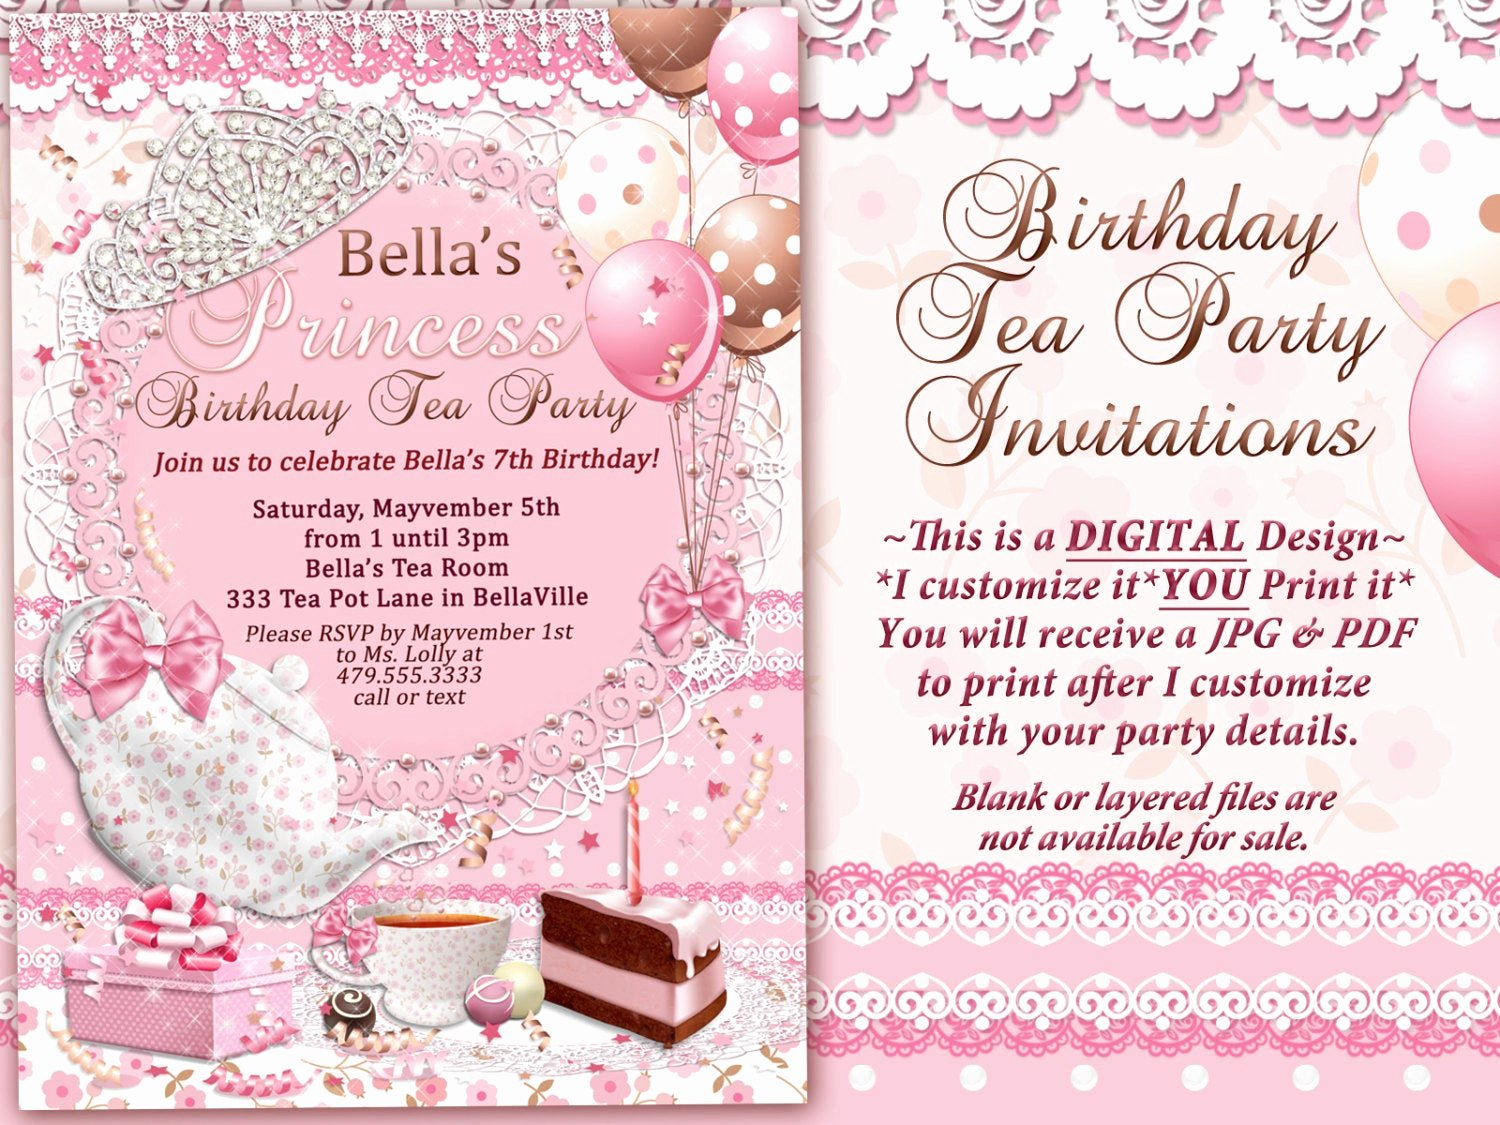 Princess Tea Party Invitations Inspirational Tea Party Invitation Princess Tea Party Birthday Tea Party